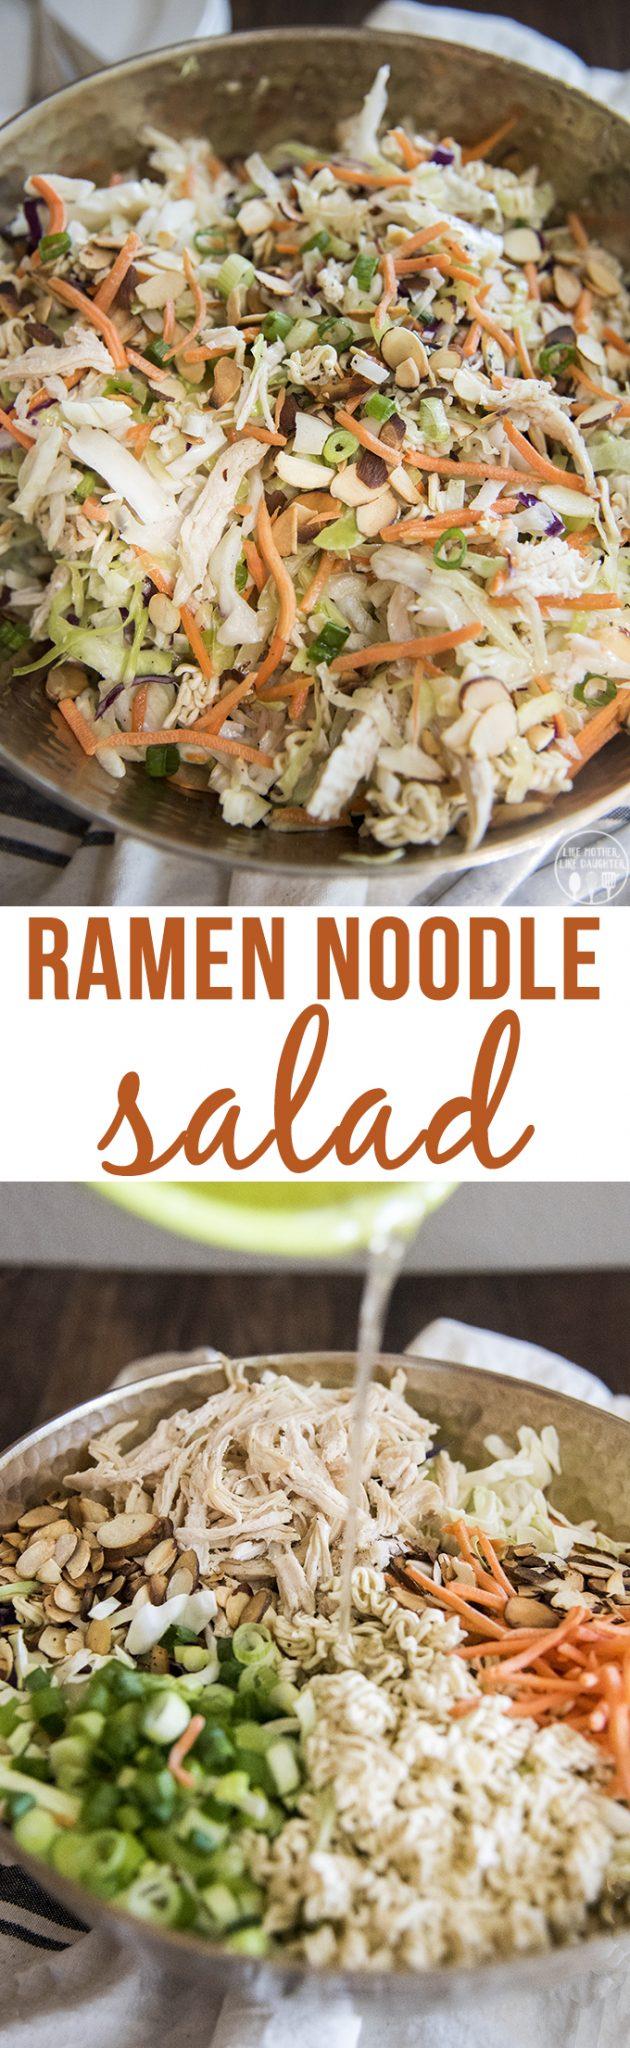 Ramen Noodle Salad - This ramen noodle salad is quick and easy to make. The crunchy salad is covered in a flavorful dressing and is perfect served at a picnic, potluck, or barbecue!